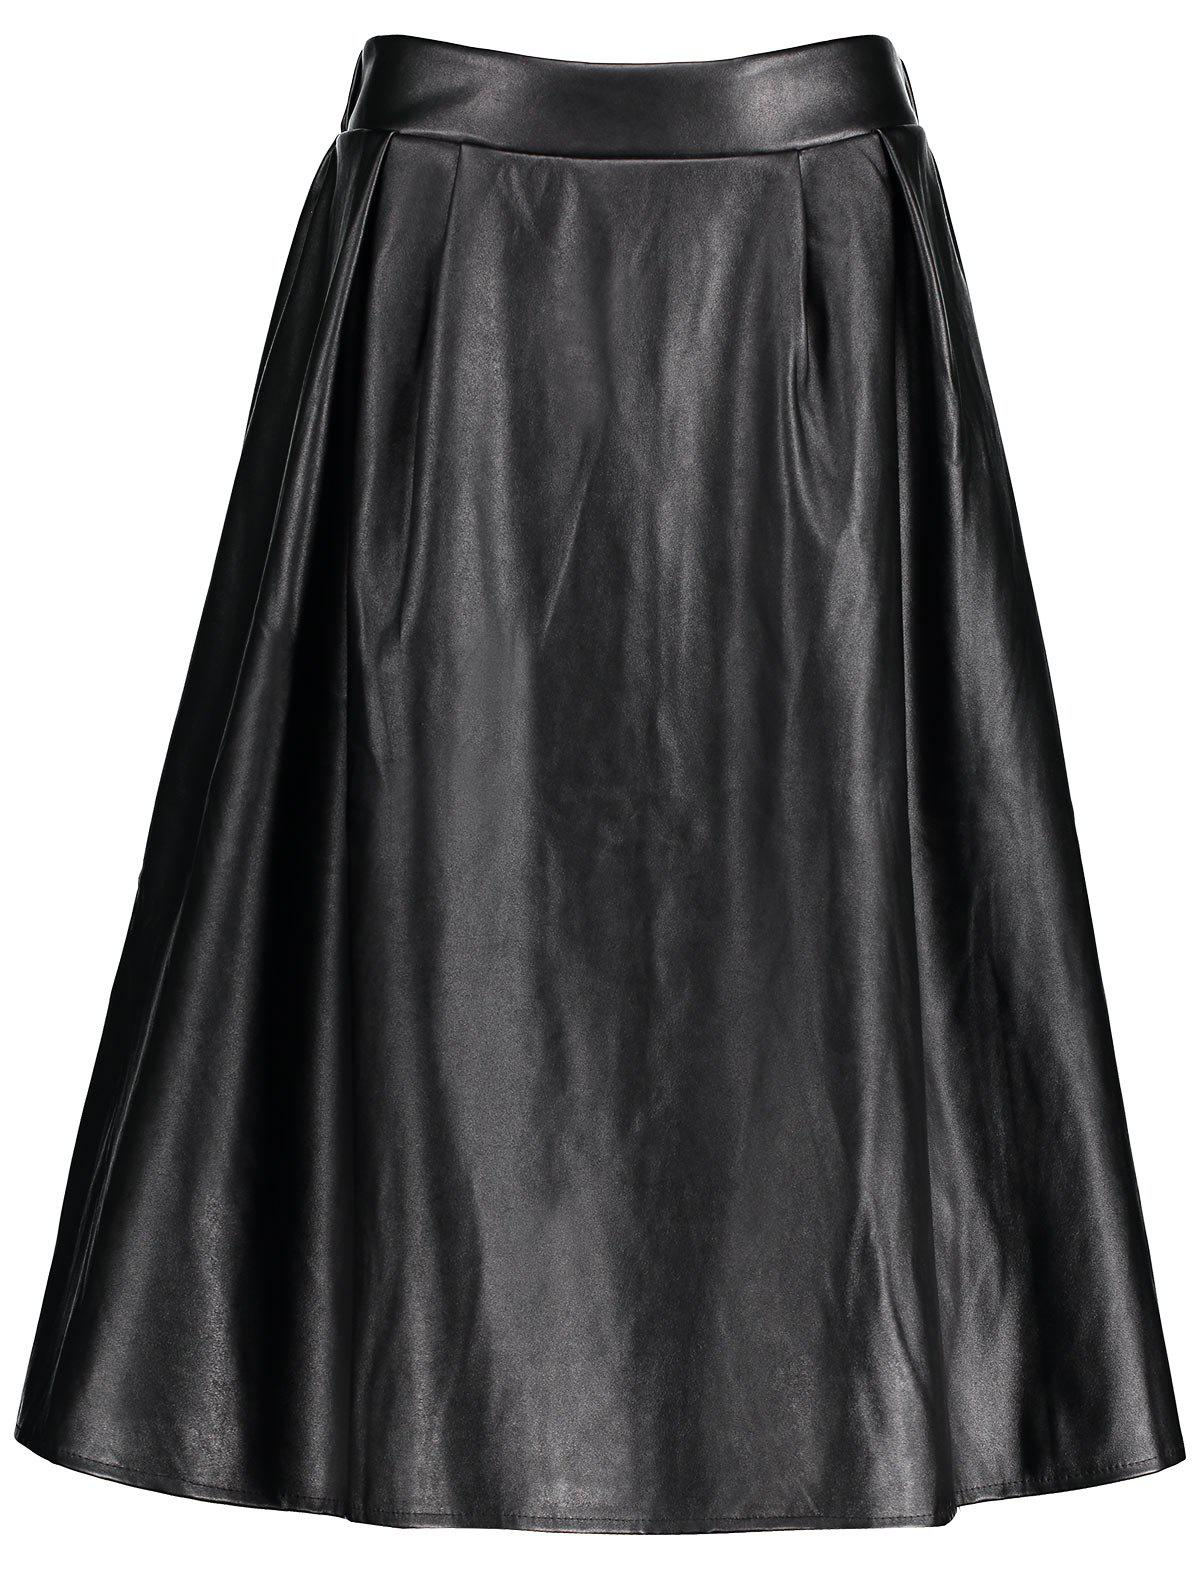 Midi Faux Leather Plus Size SkirtWOMEN<br><br>Size: 2XL; Color: BLACK; Material: Cotton,Polyester,PU; Length: Mid-Calf; Silhouette: A-Line; Pattern Type: Solid; Season: Fall,Spring; Weight: 0.5150kg; Package Contents: 1 x Skirt;